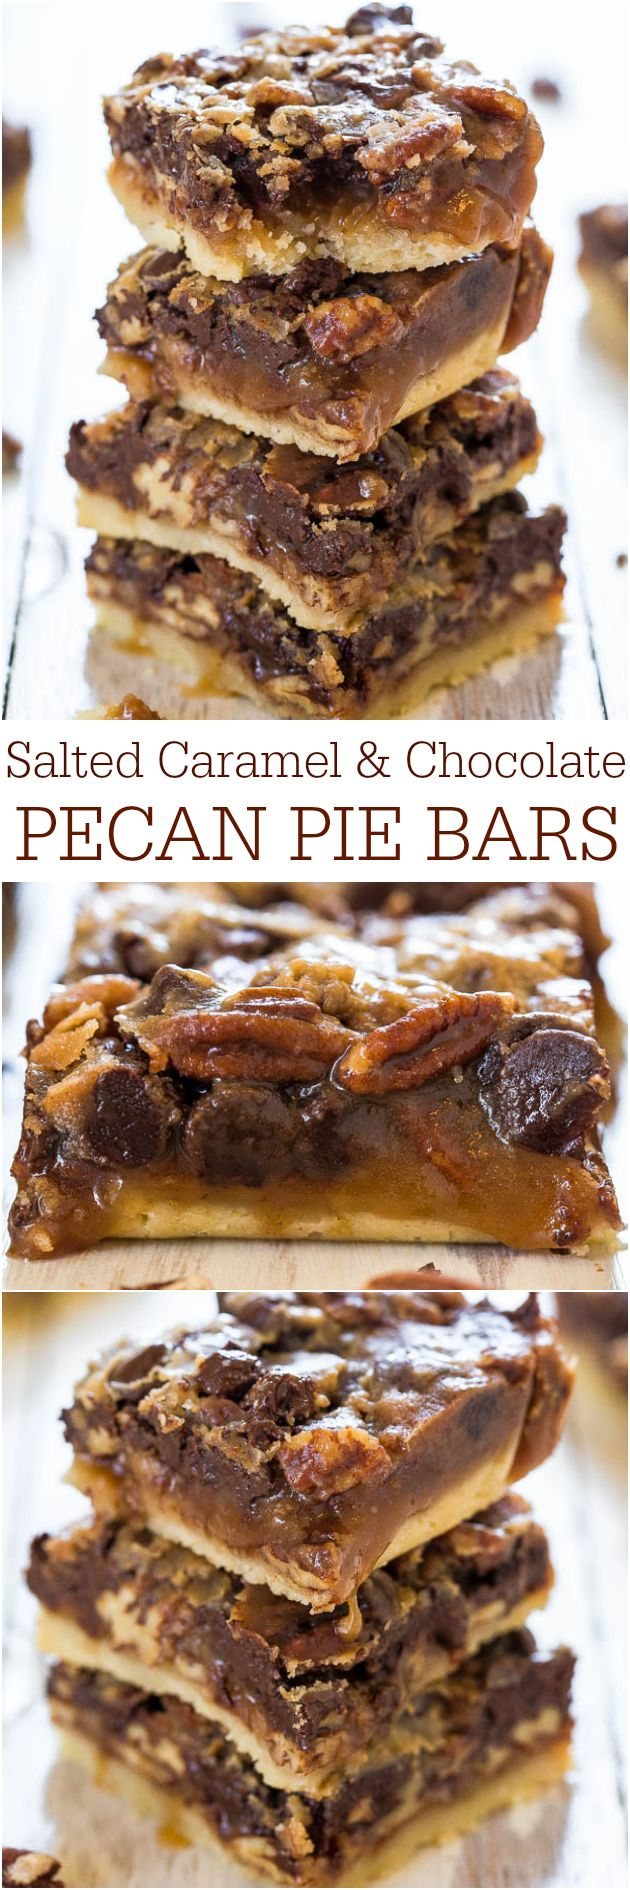 Salted Caramel and Chocolate Pecan Pie Bars | Pecan pie bars, Salted ...